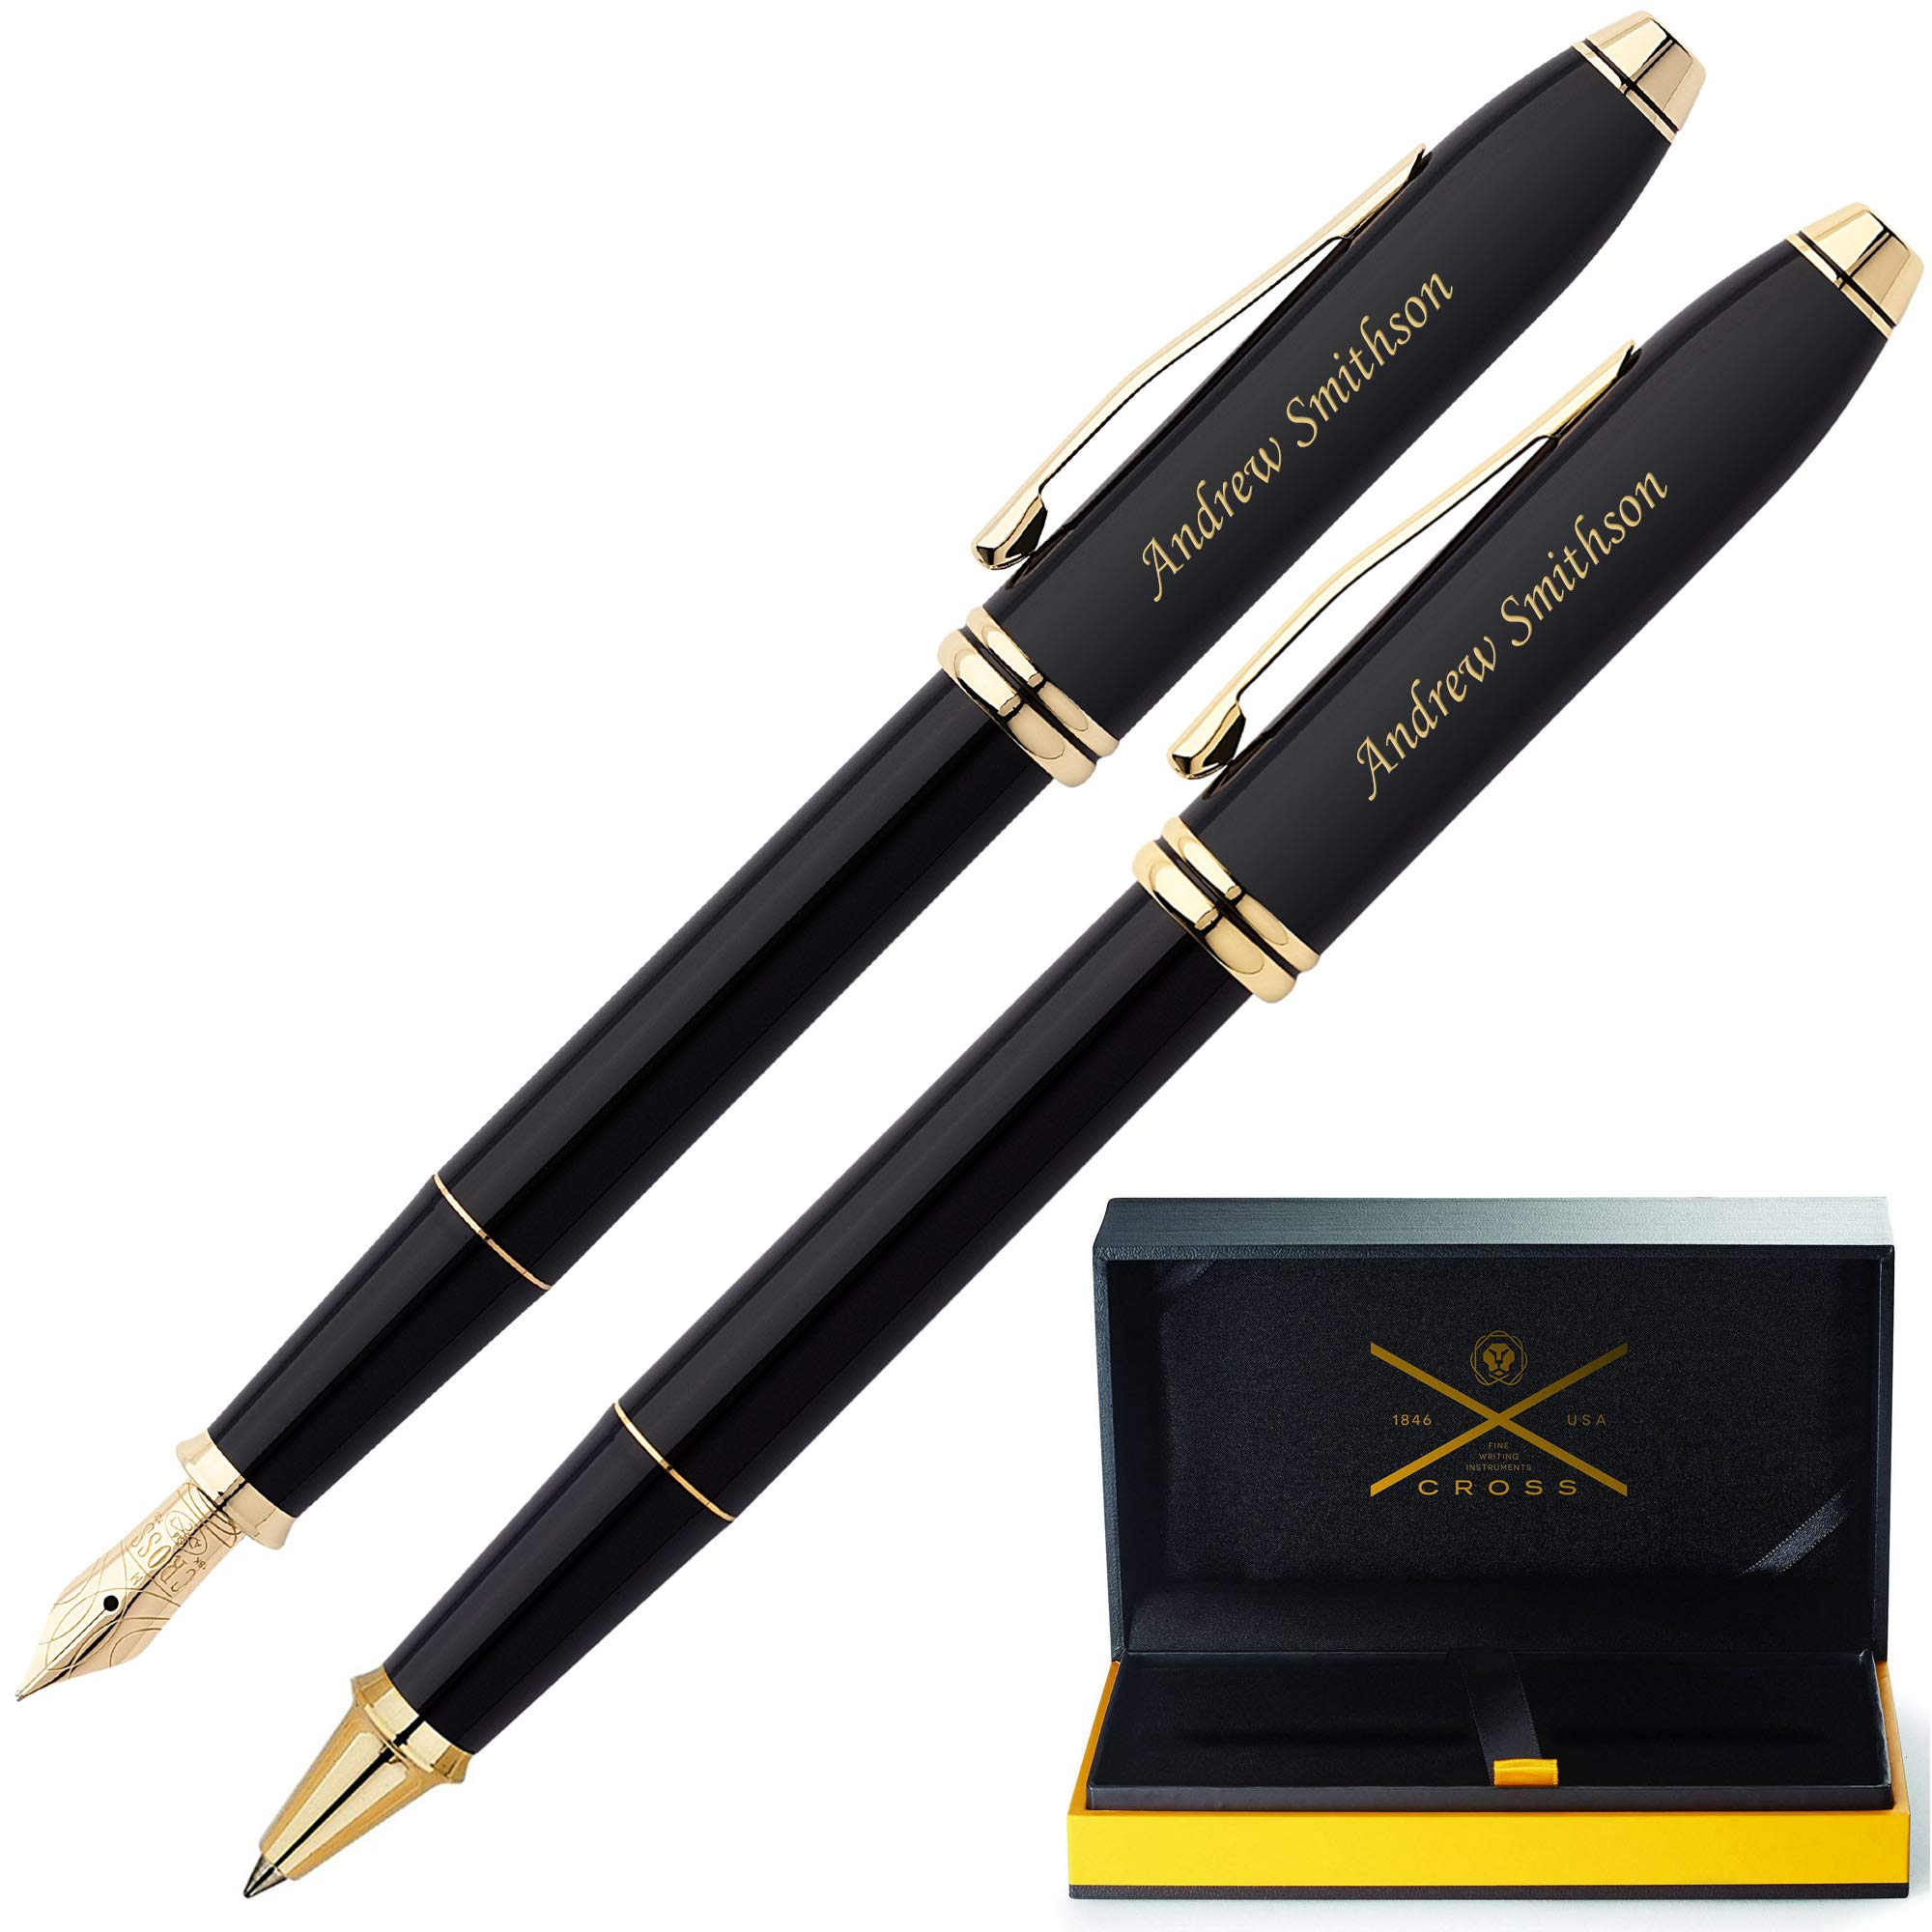 Cross Pen Set   Engraved/Personalized AT Cross Townsend Black with 23KT Gold Rollerball and Fountain Pen Gift Set. Custom Engraved Fast